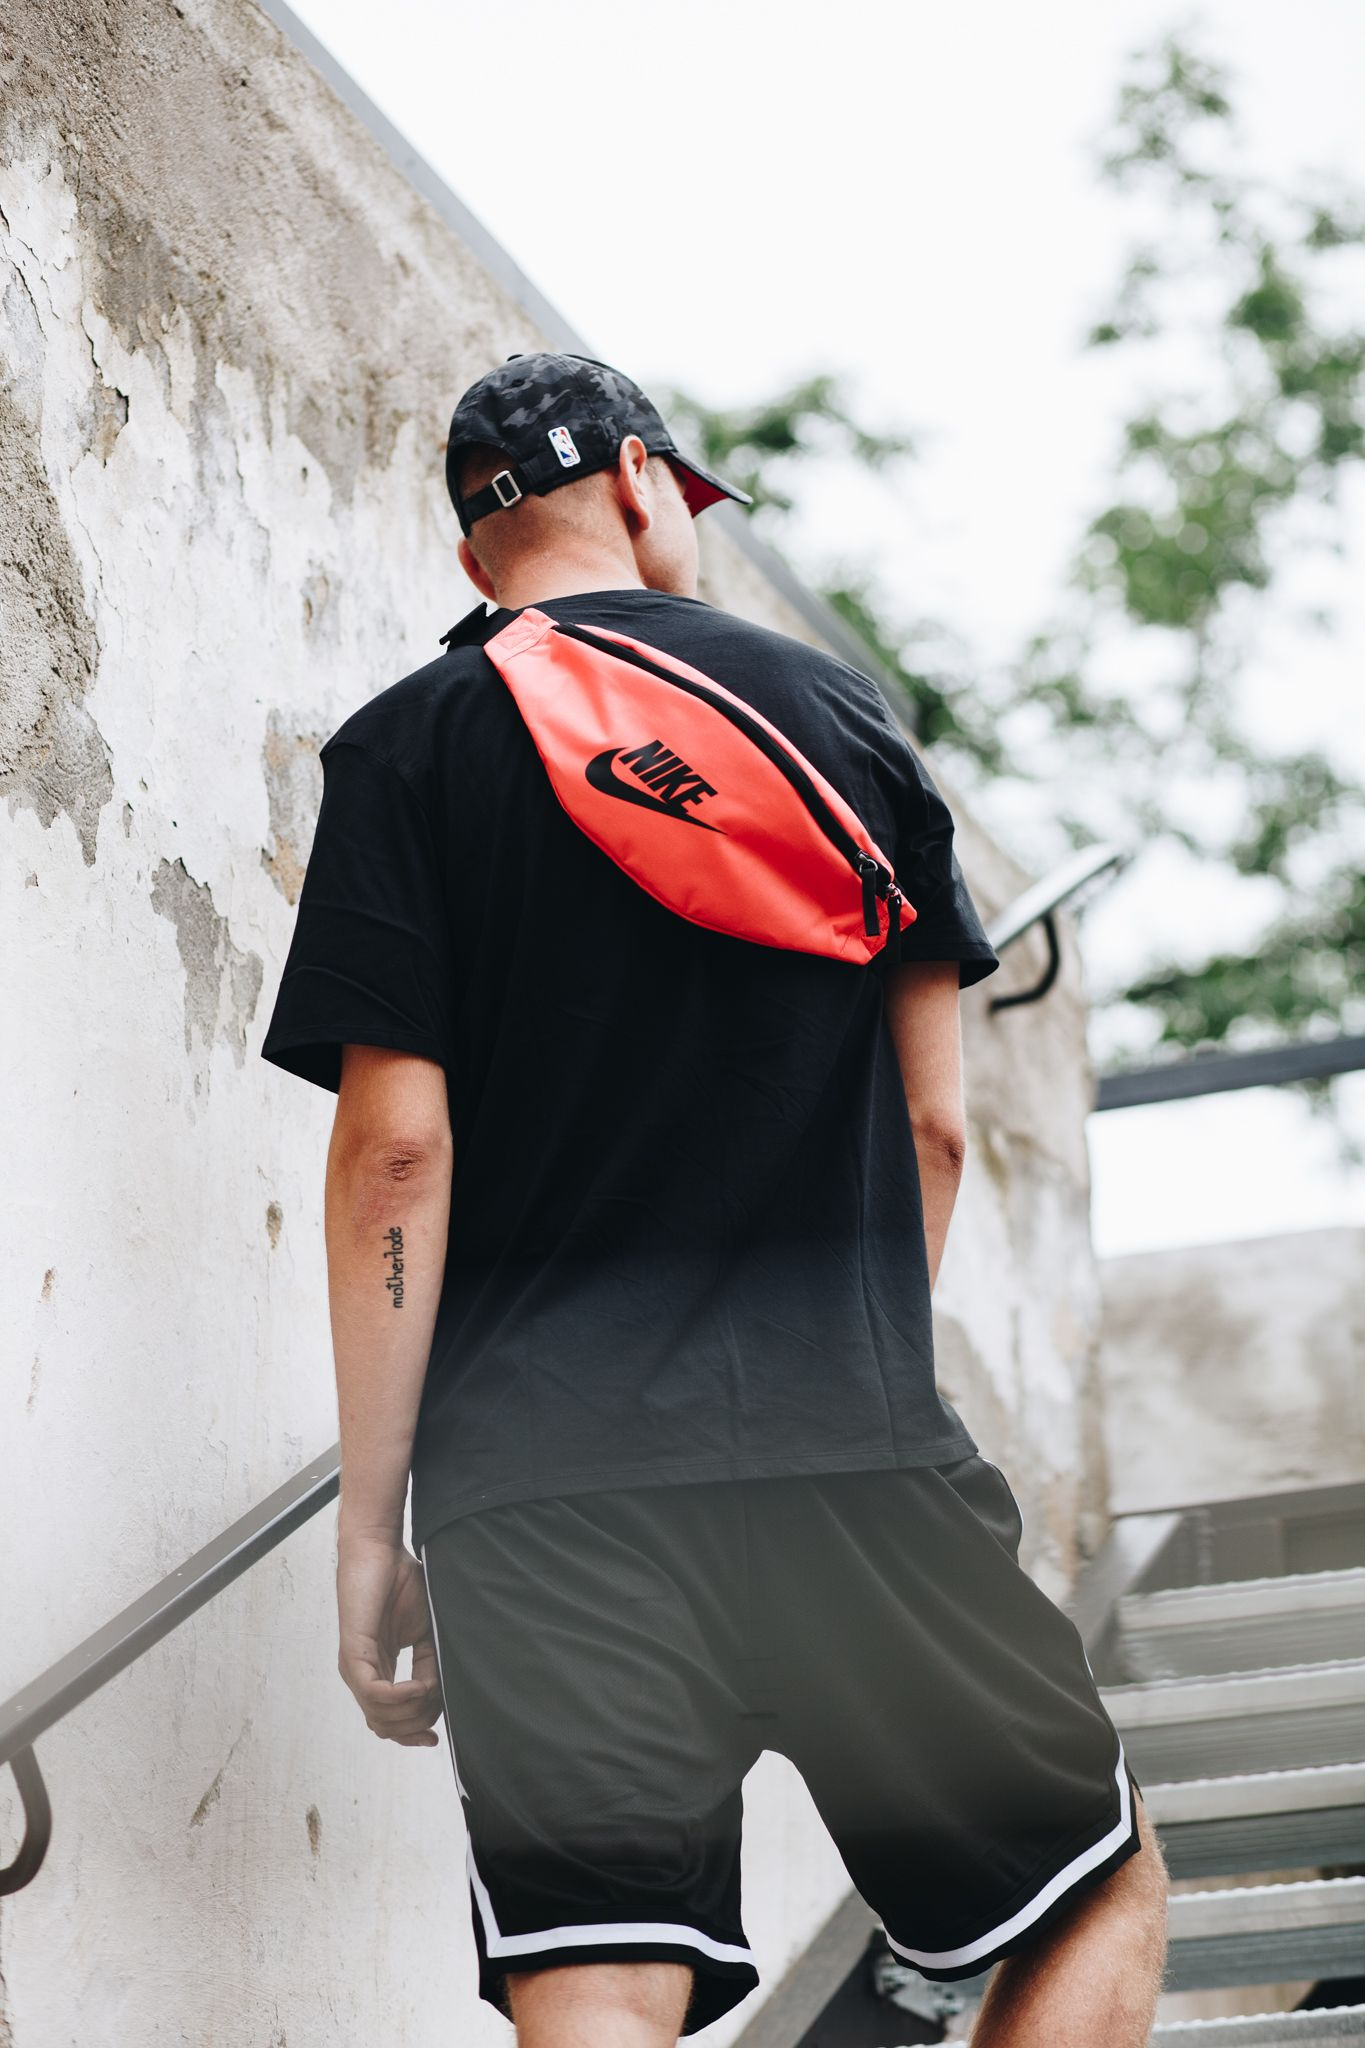 f3497da628d0 The Nike Sportswear Heritage Hip Pack lets you easily access and carry your  gear. Check out our selection of hip bags   fanny packs online.